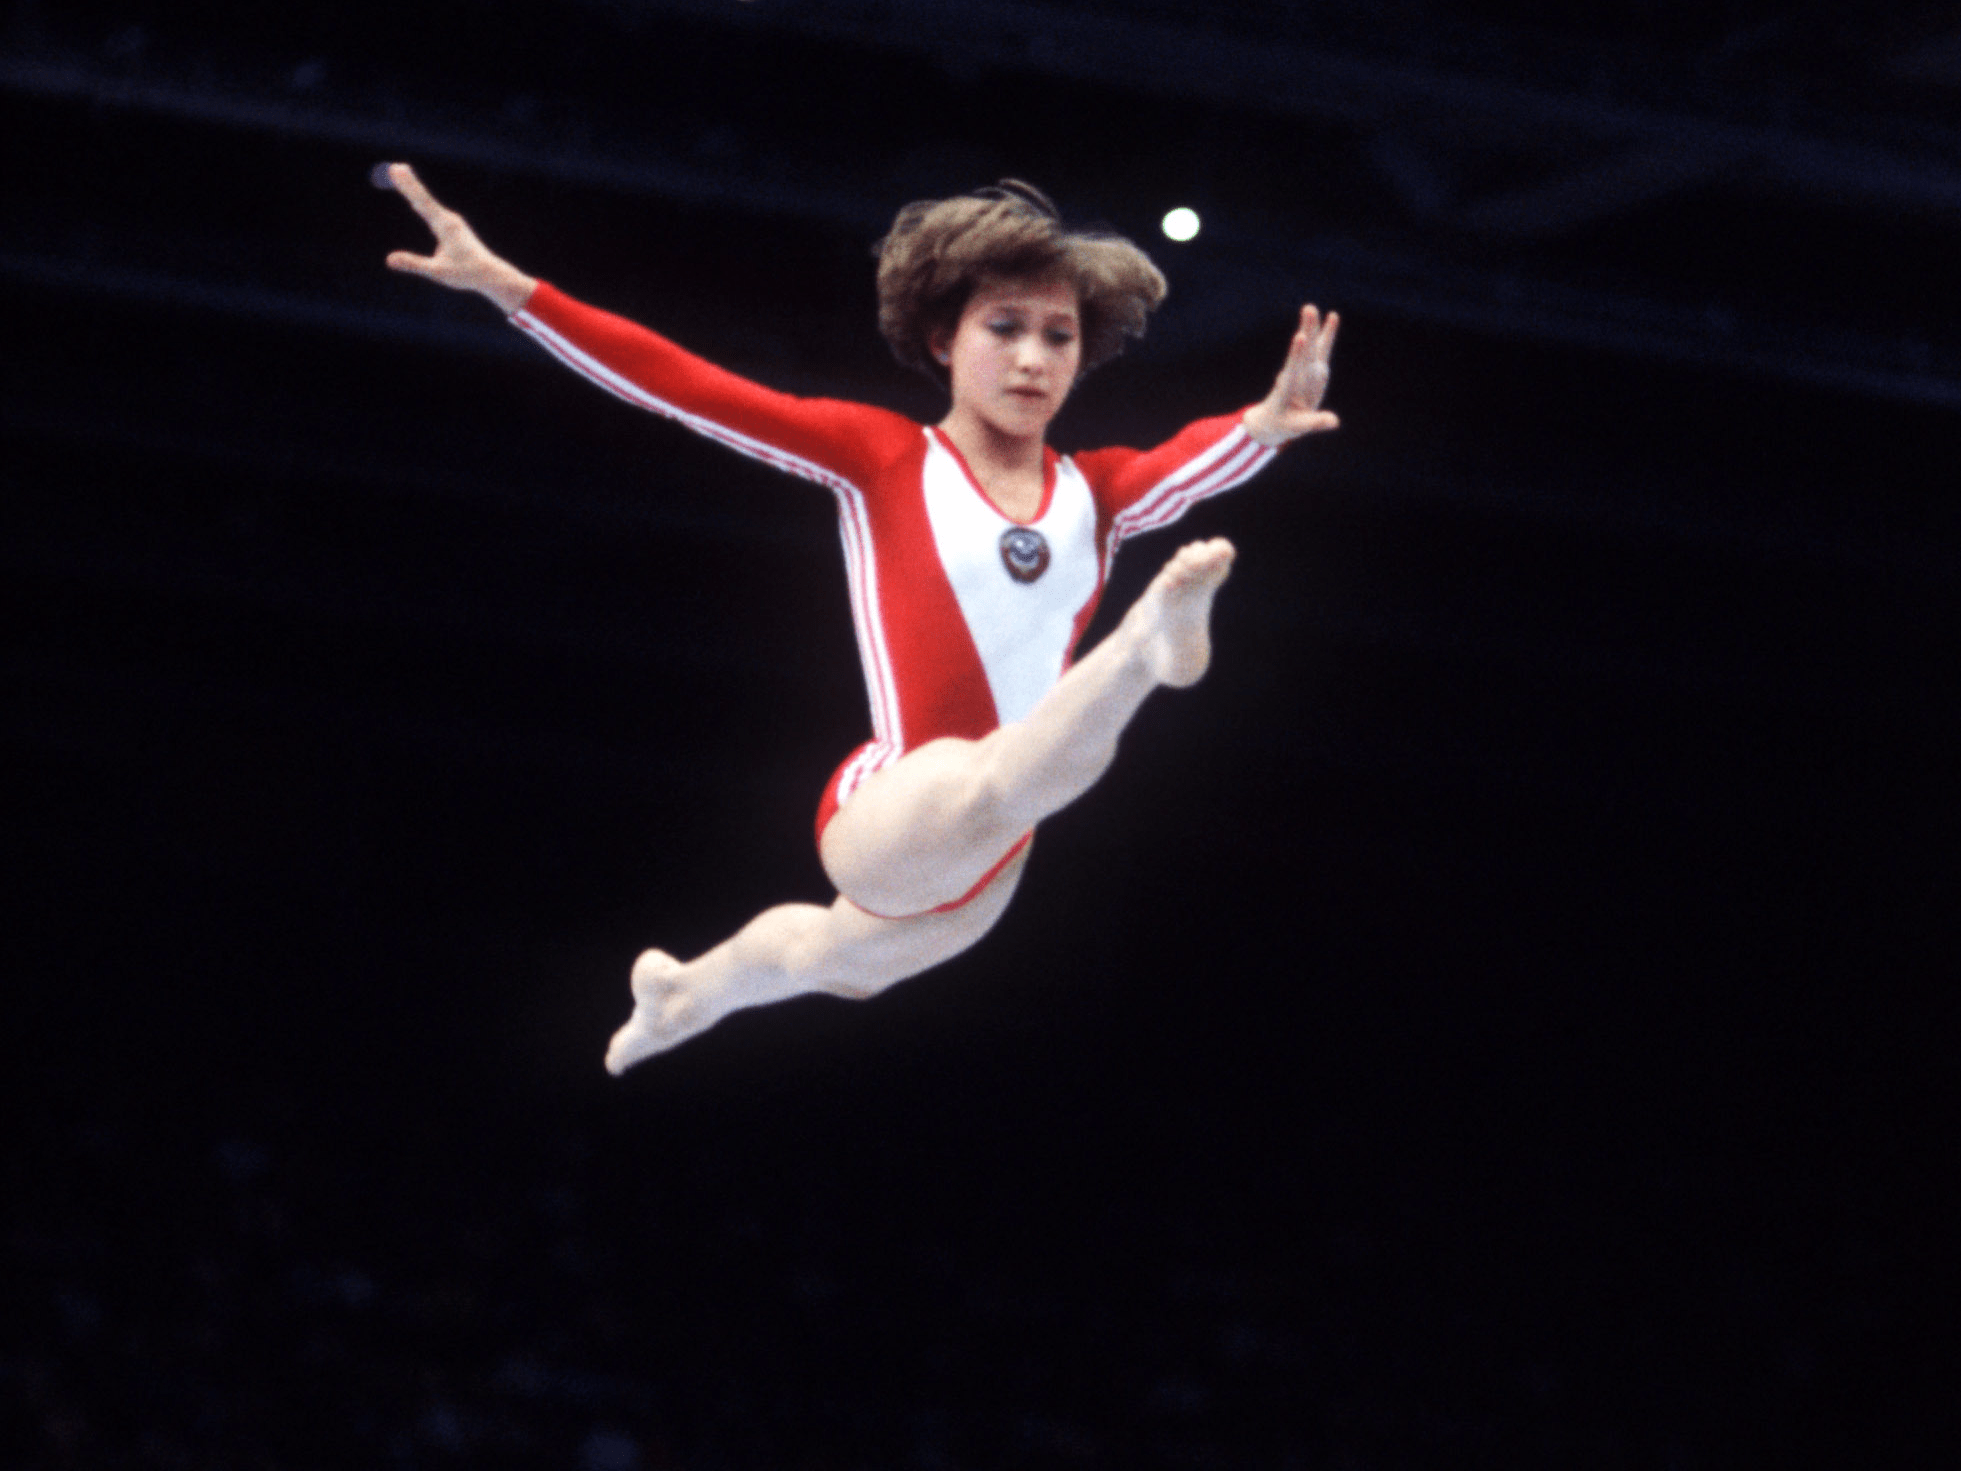 Moscow, 1980: With the Cold War ongoing, the US boycotted the Moscow games and also urged their allies to do the same to protest the Soviet invasion of Afghanistan. This image shows the USSR's Yelena Davydova in action on the beam.